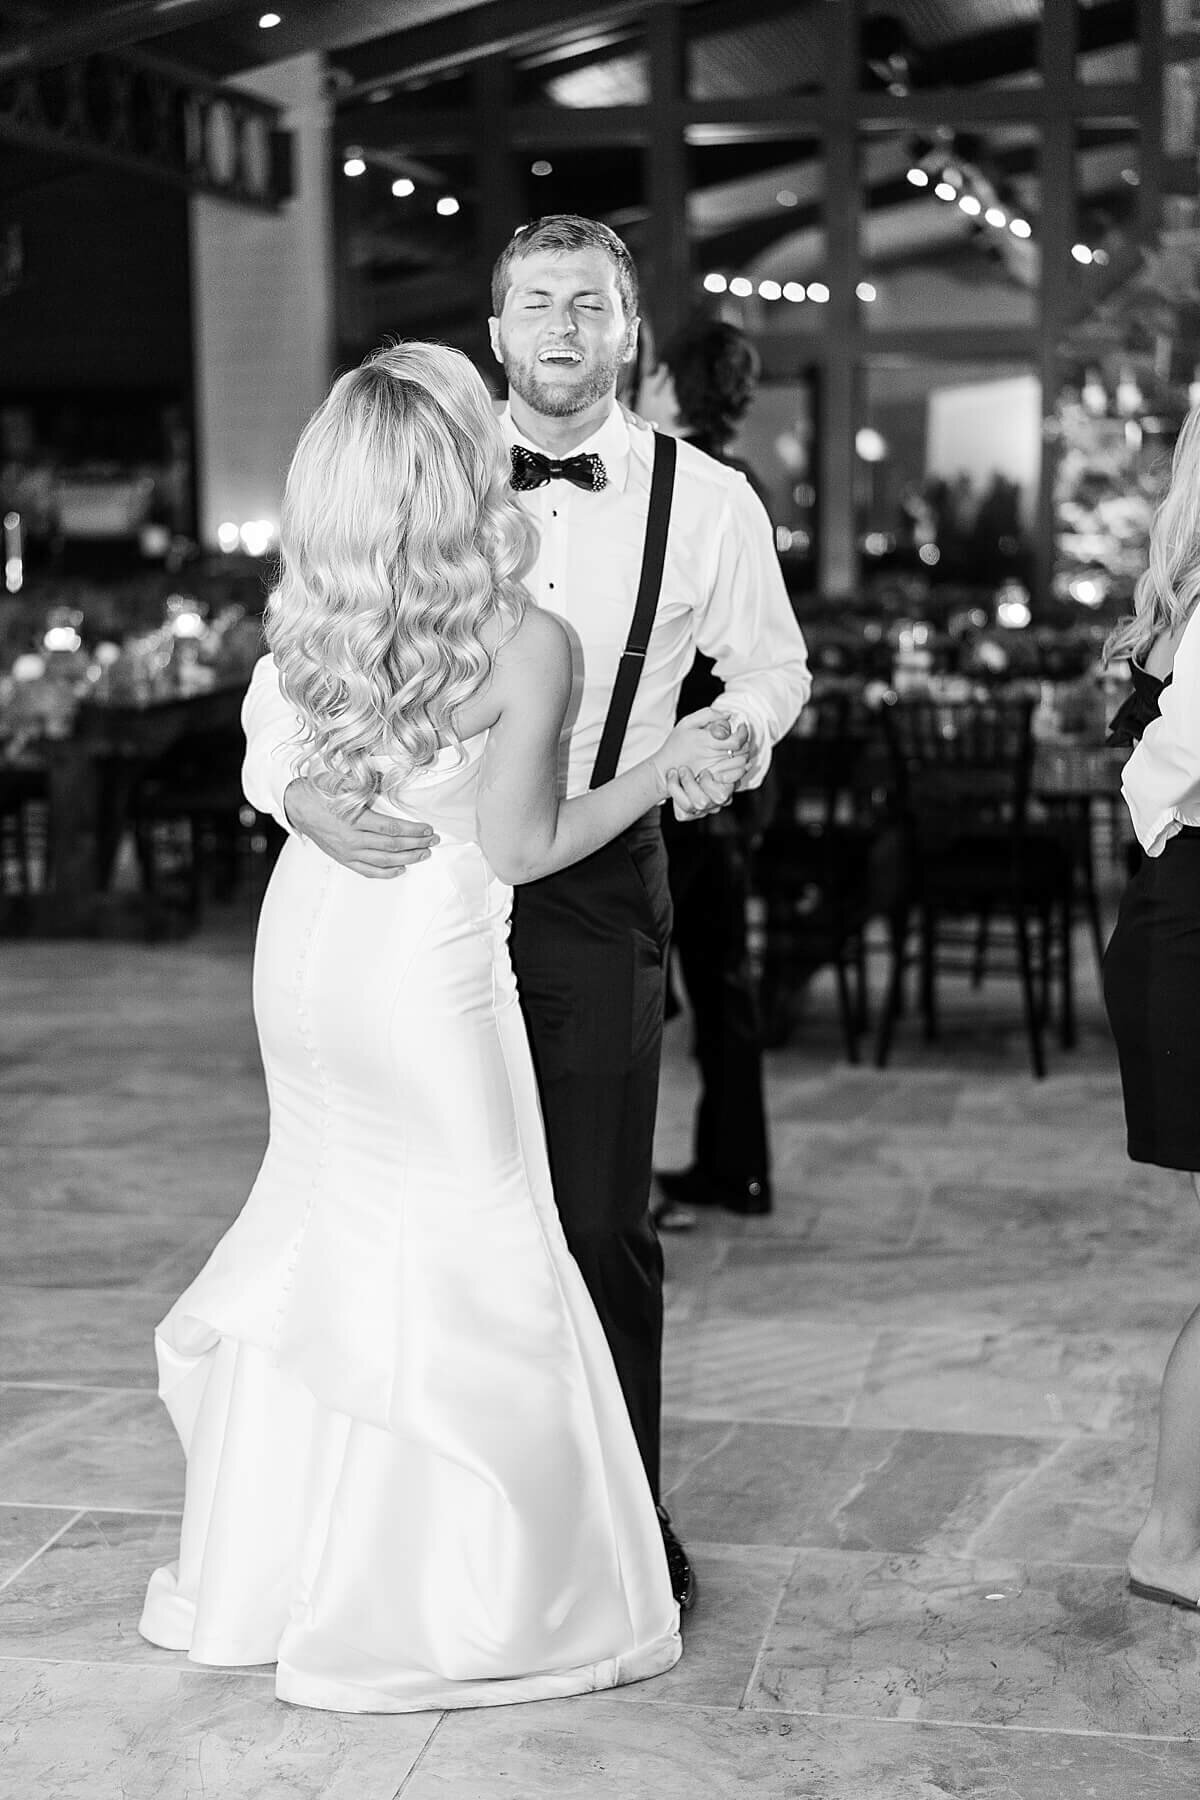 Grand Exit at Black and White Wedding at The Annex Wedding Venue photographed by Alicia Yarrish Photography